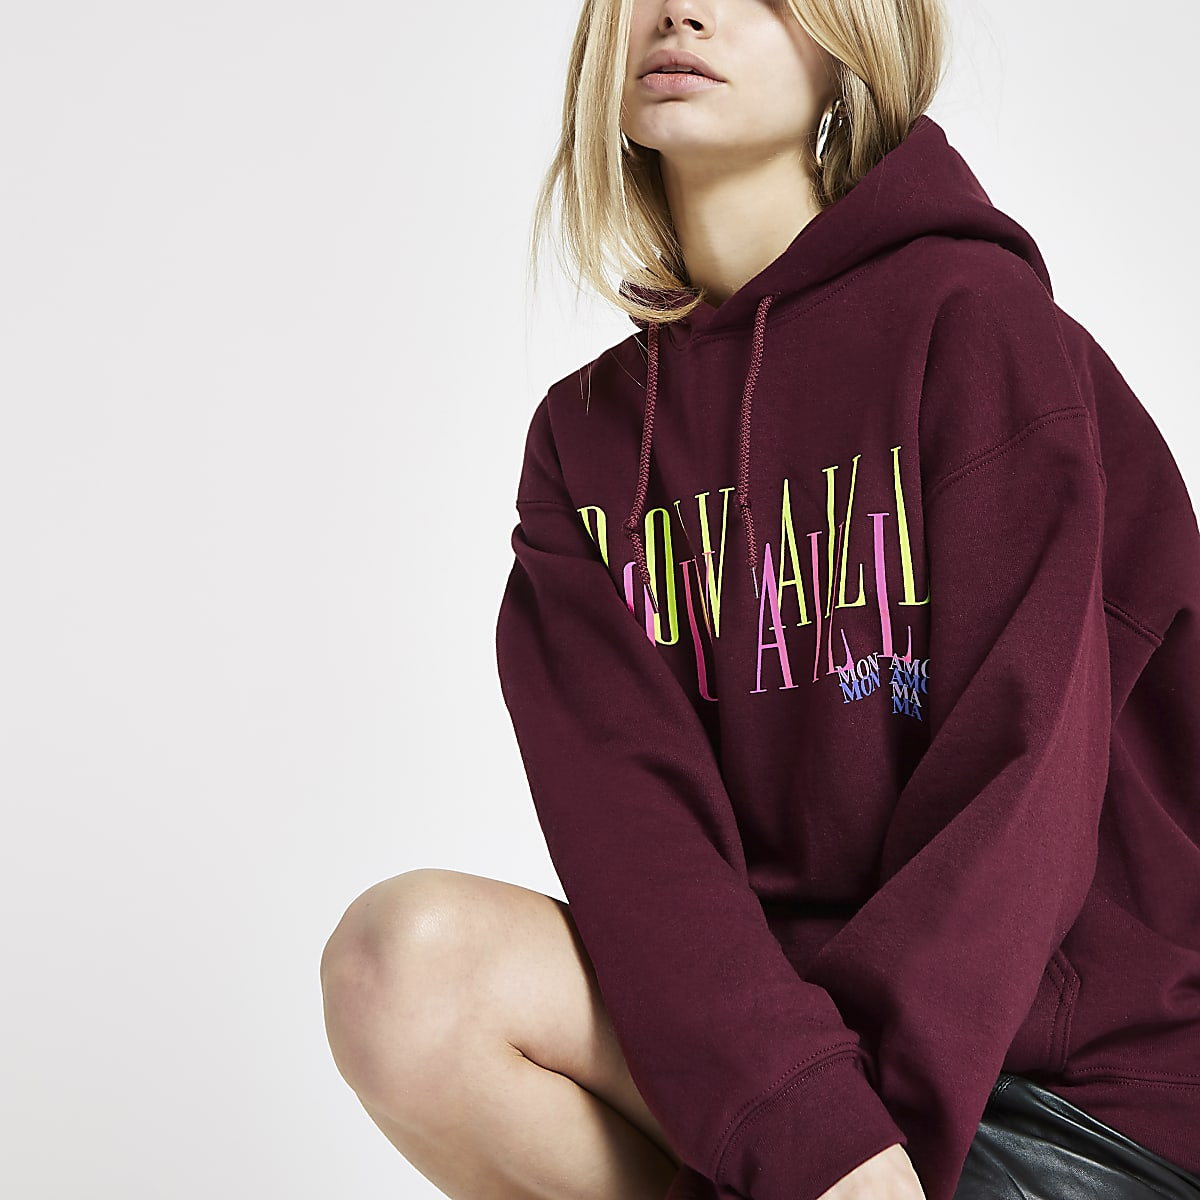 Burgundy 'Trouvaille' neon print hoodie